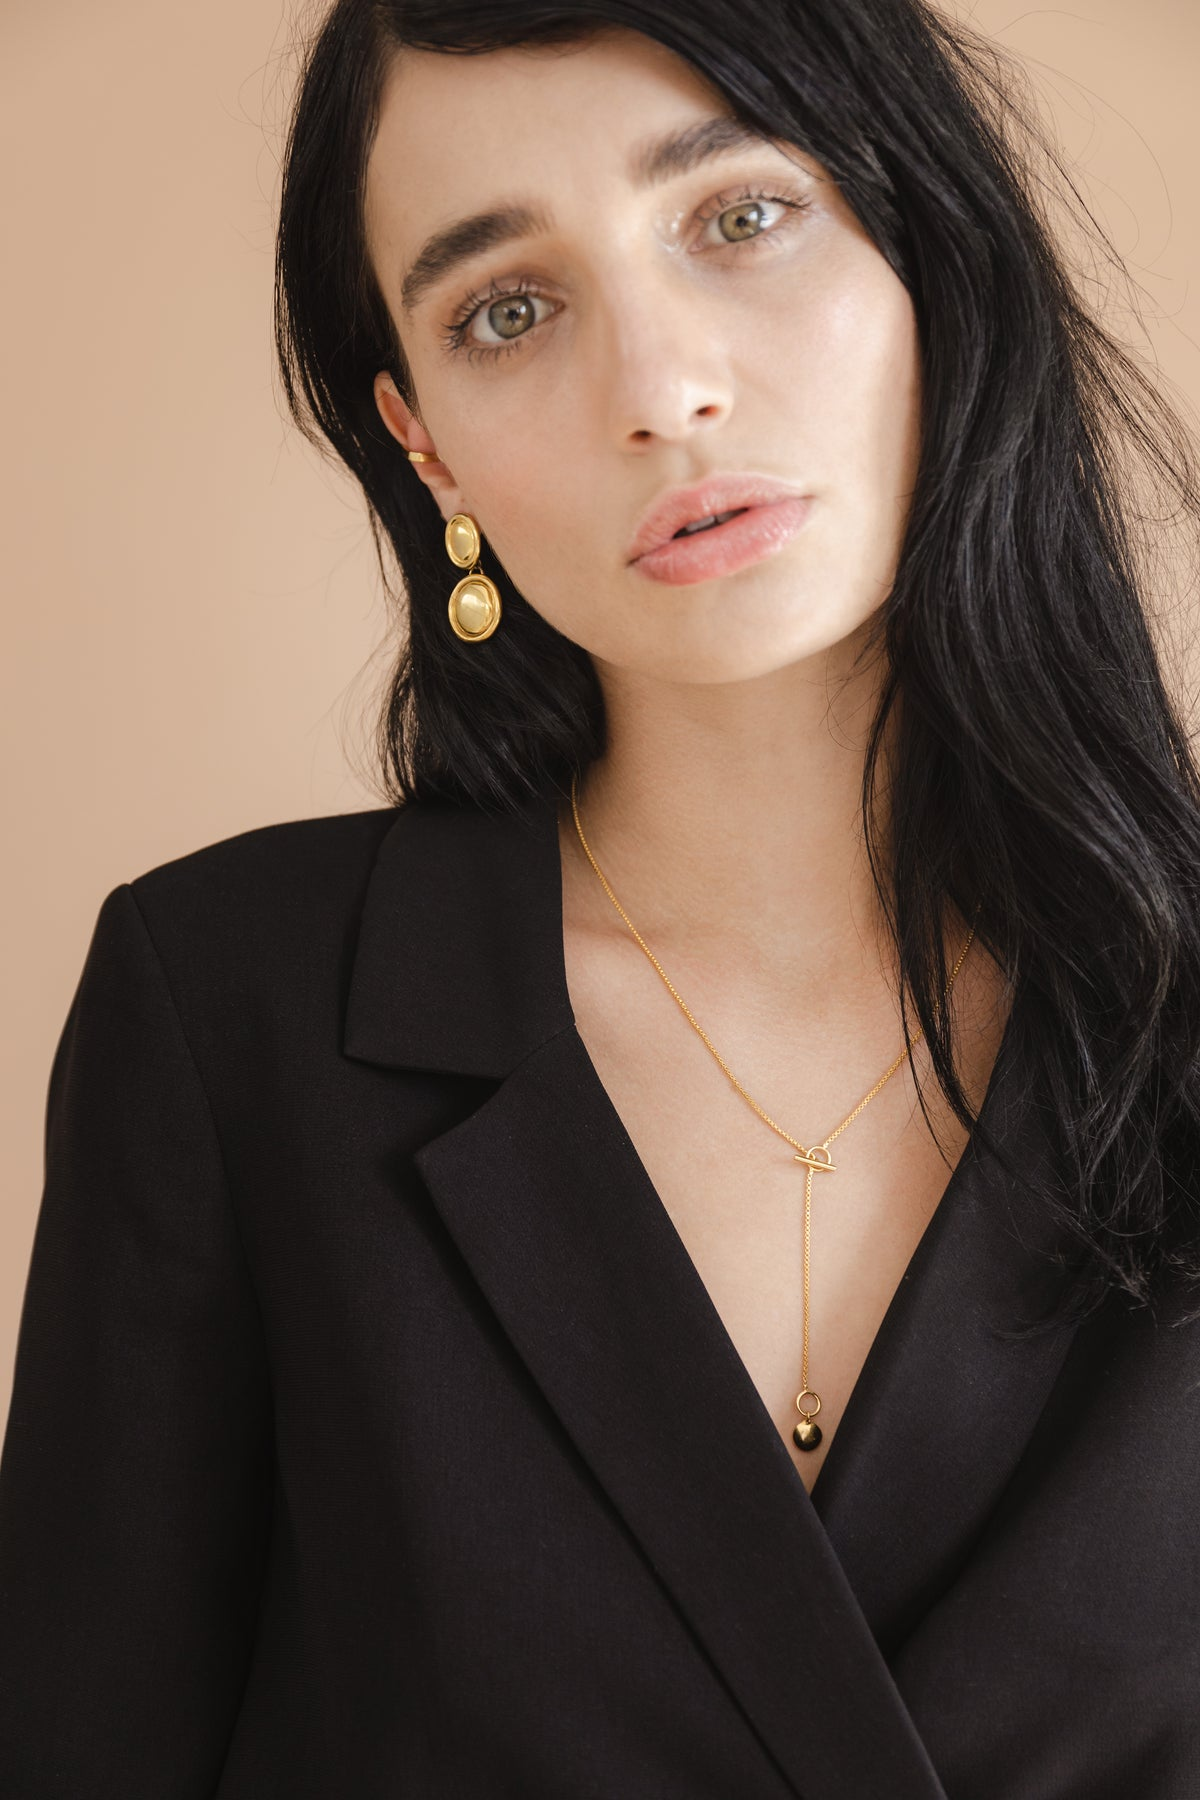 Brunette pretty model wearing Flash jewellery Double dome earring in gold available on Maker's Mrkt Makers Market melbourne